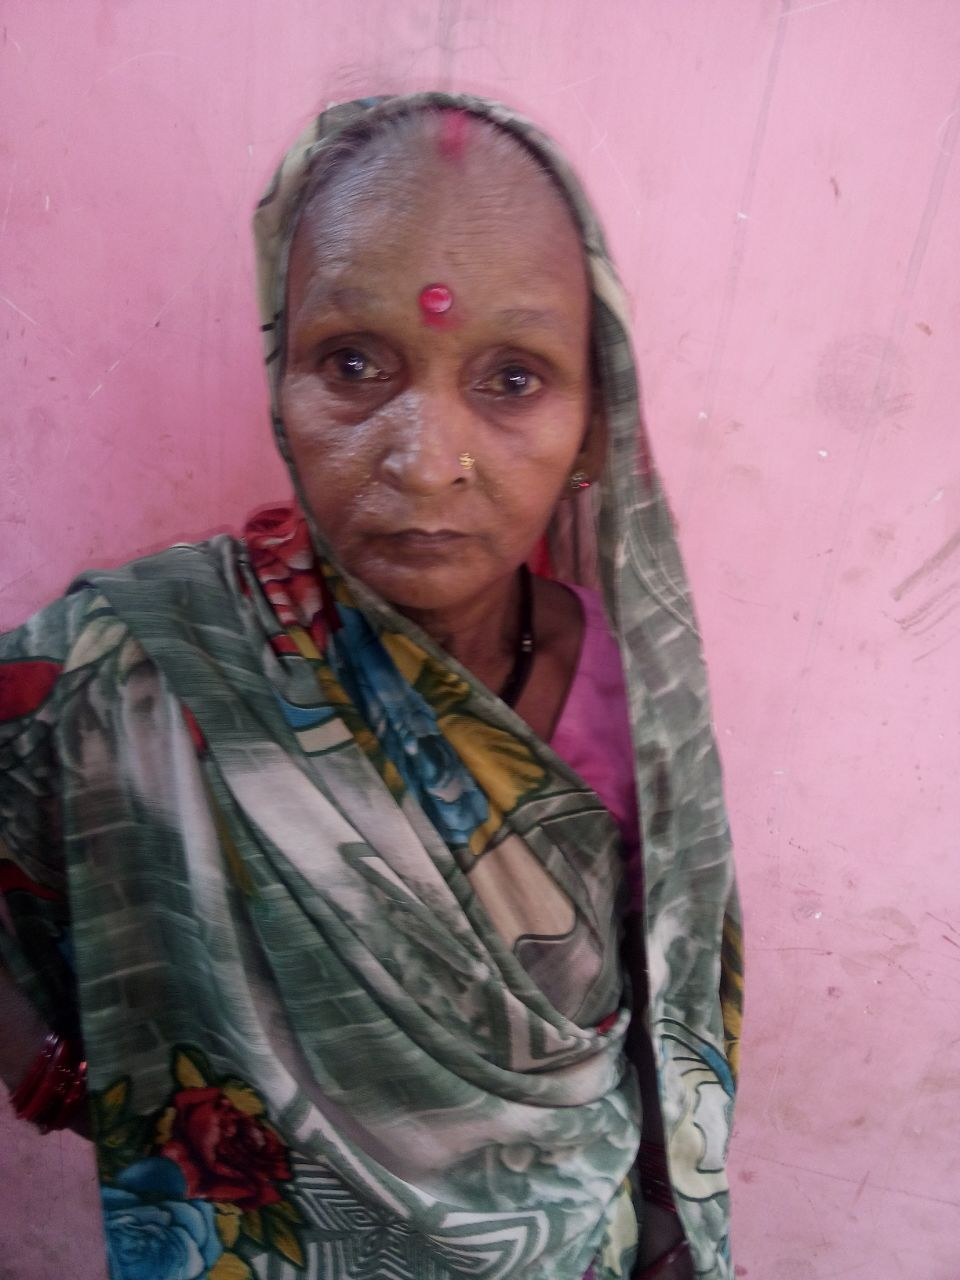 This is Nimita. She is 61 years old. She tells us she has trouble recalling memories. We believe she has dementia and will follow up with her.